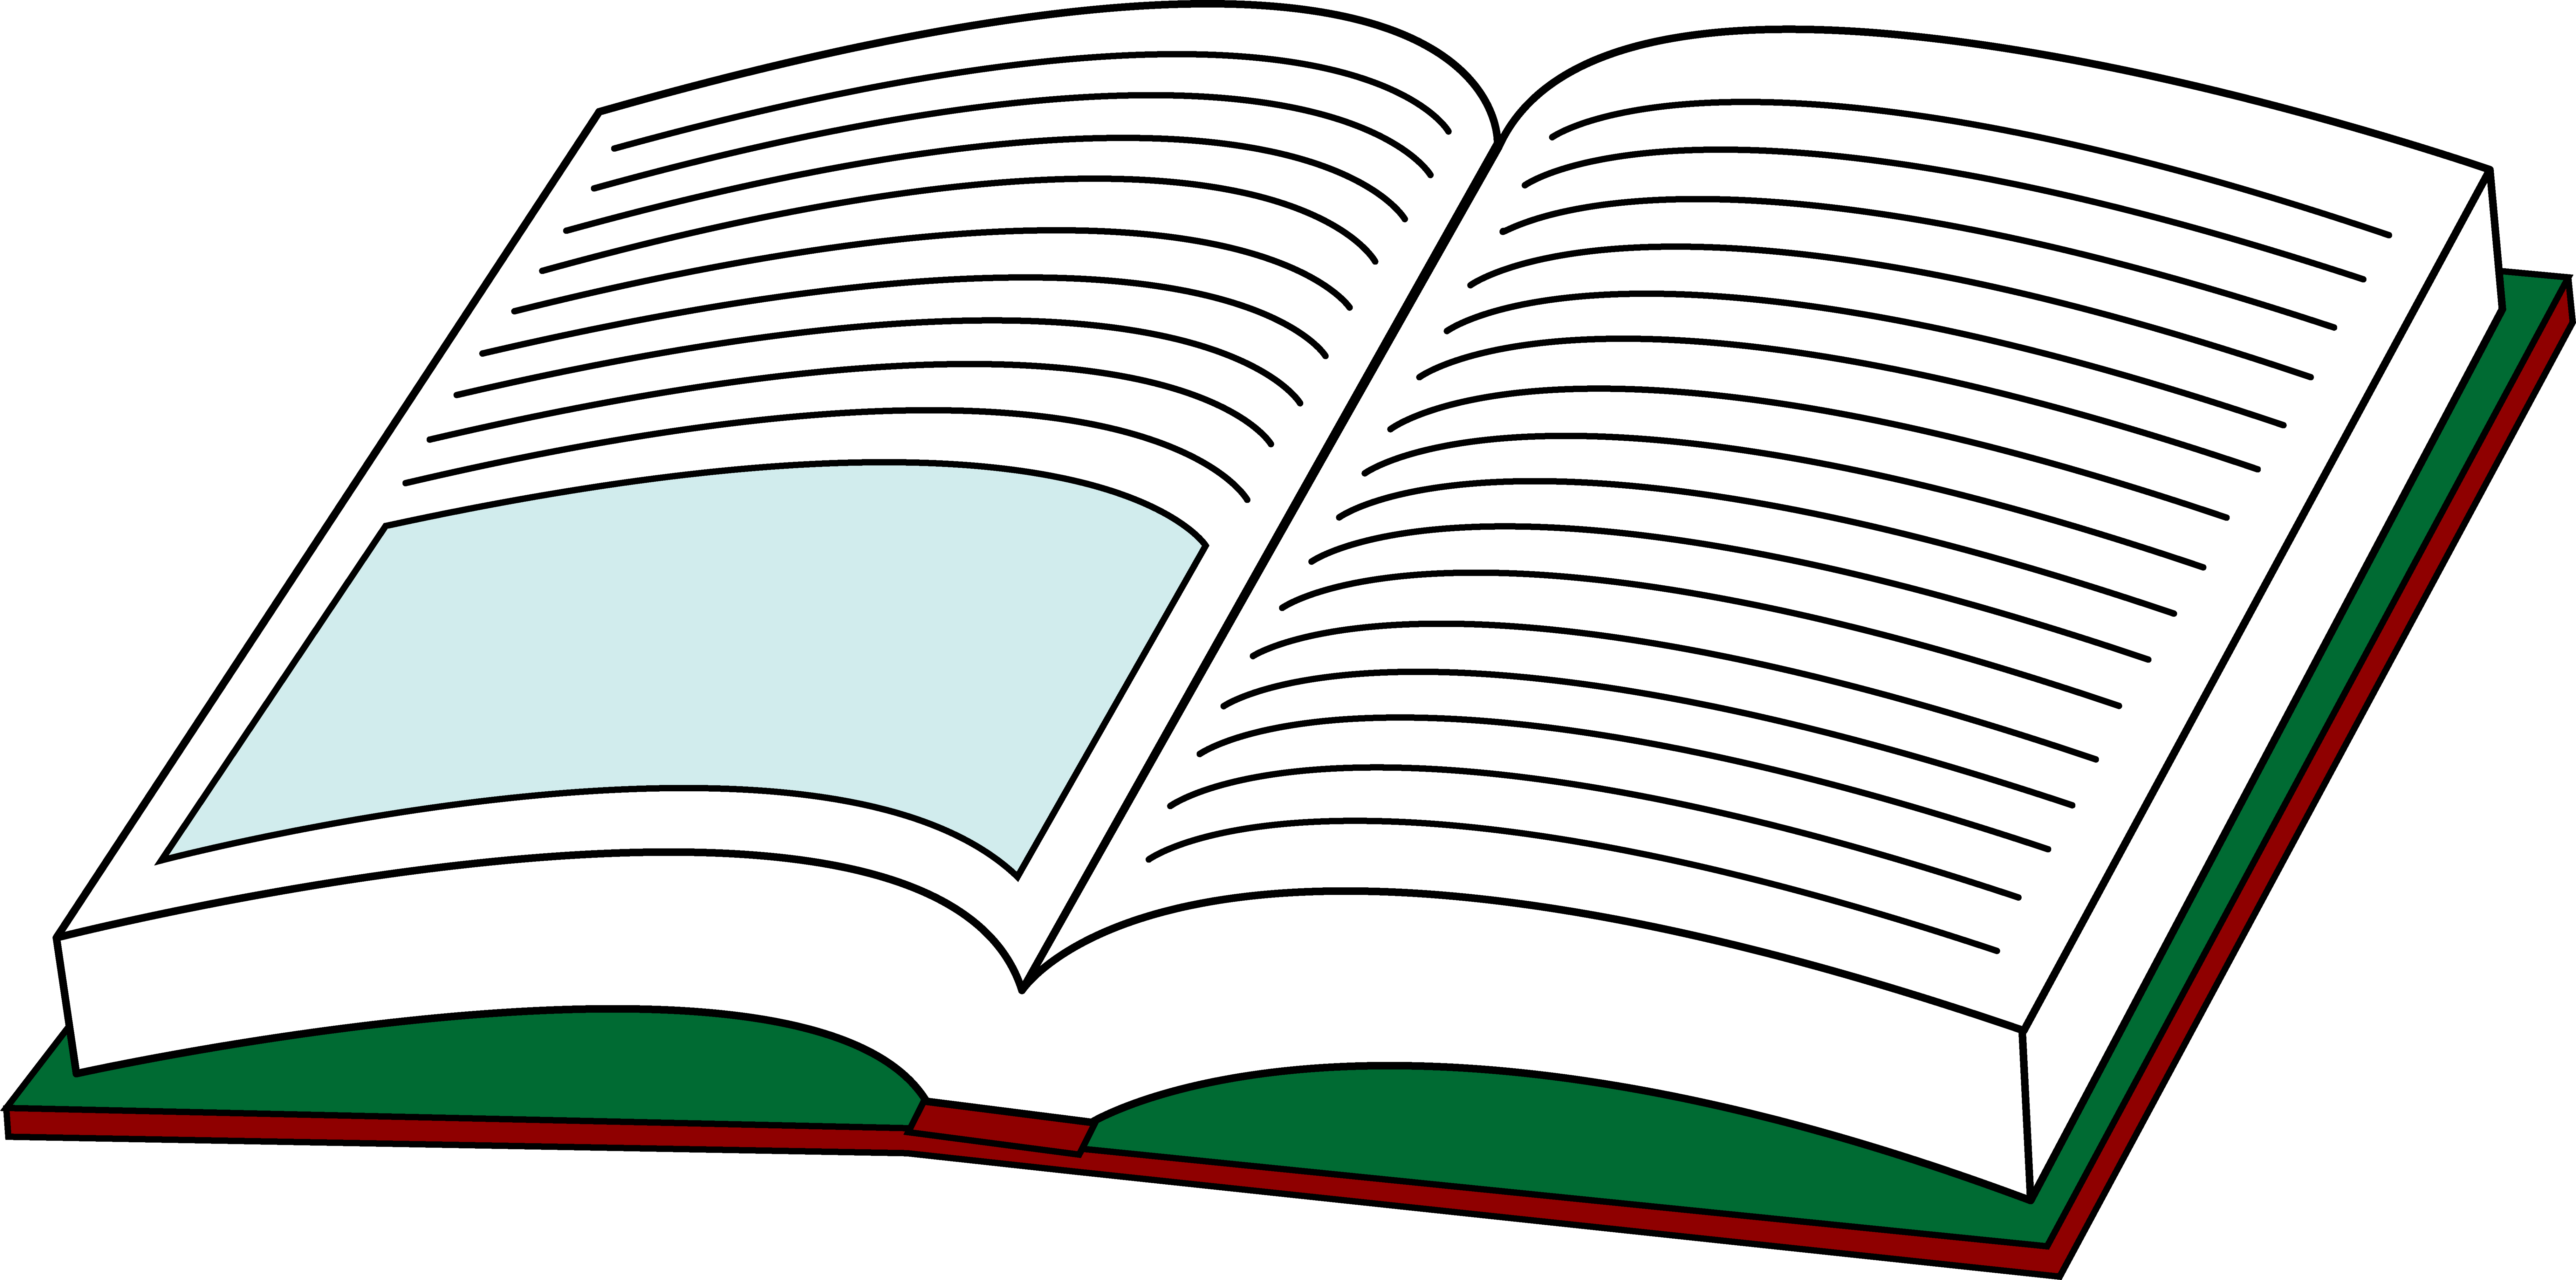 Books clipart images gallery. Open clip svg